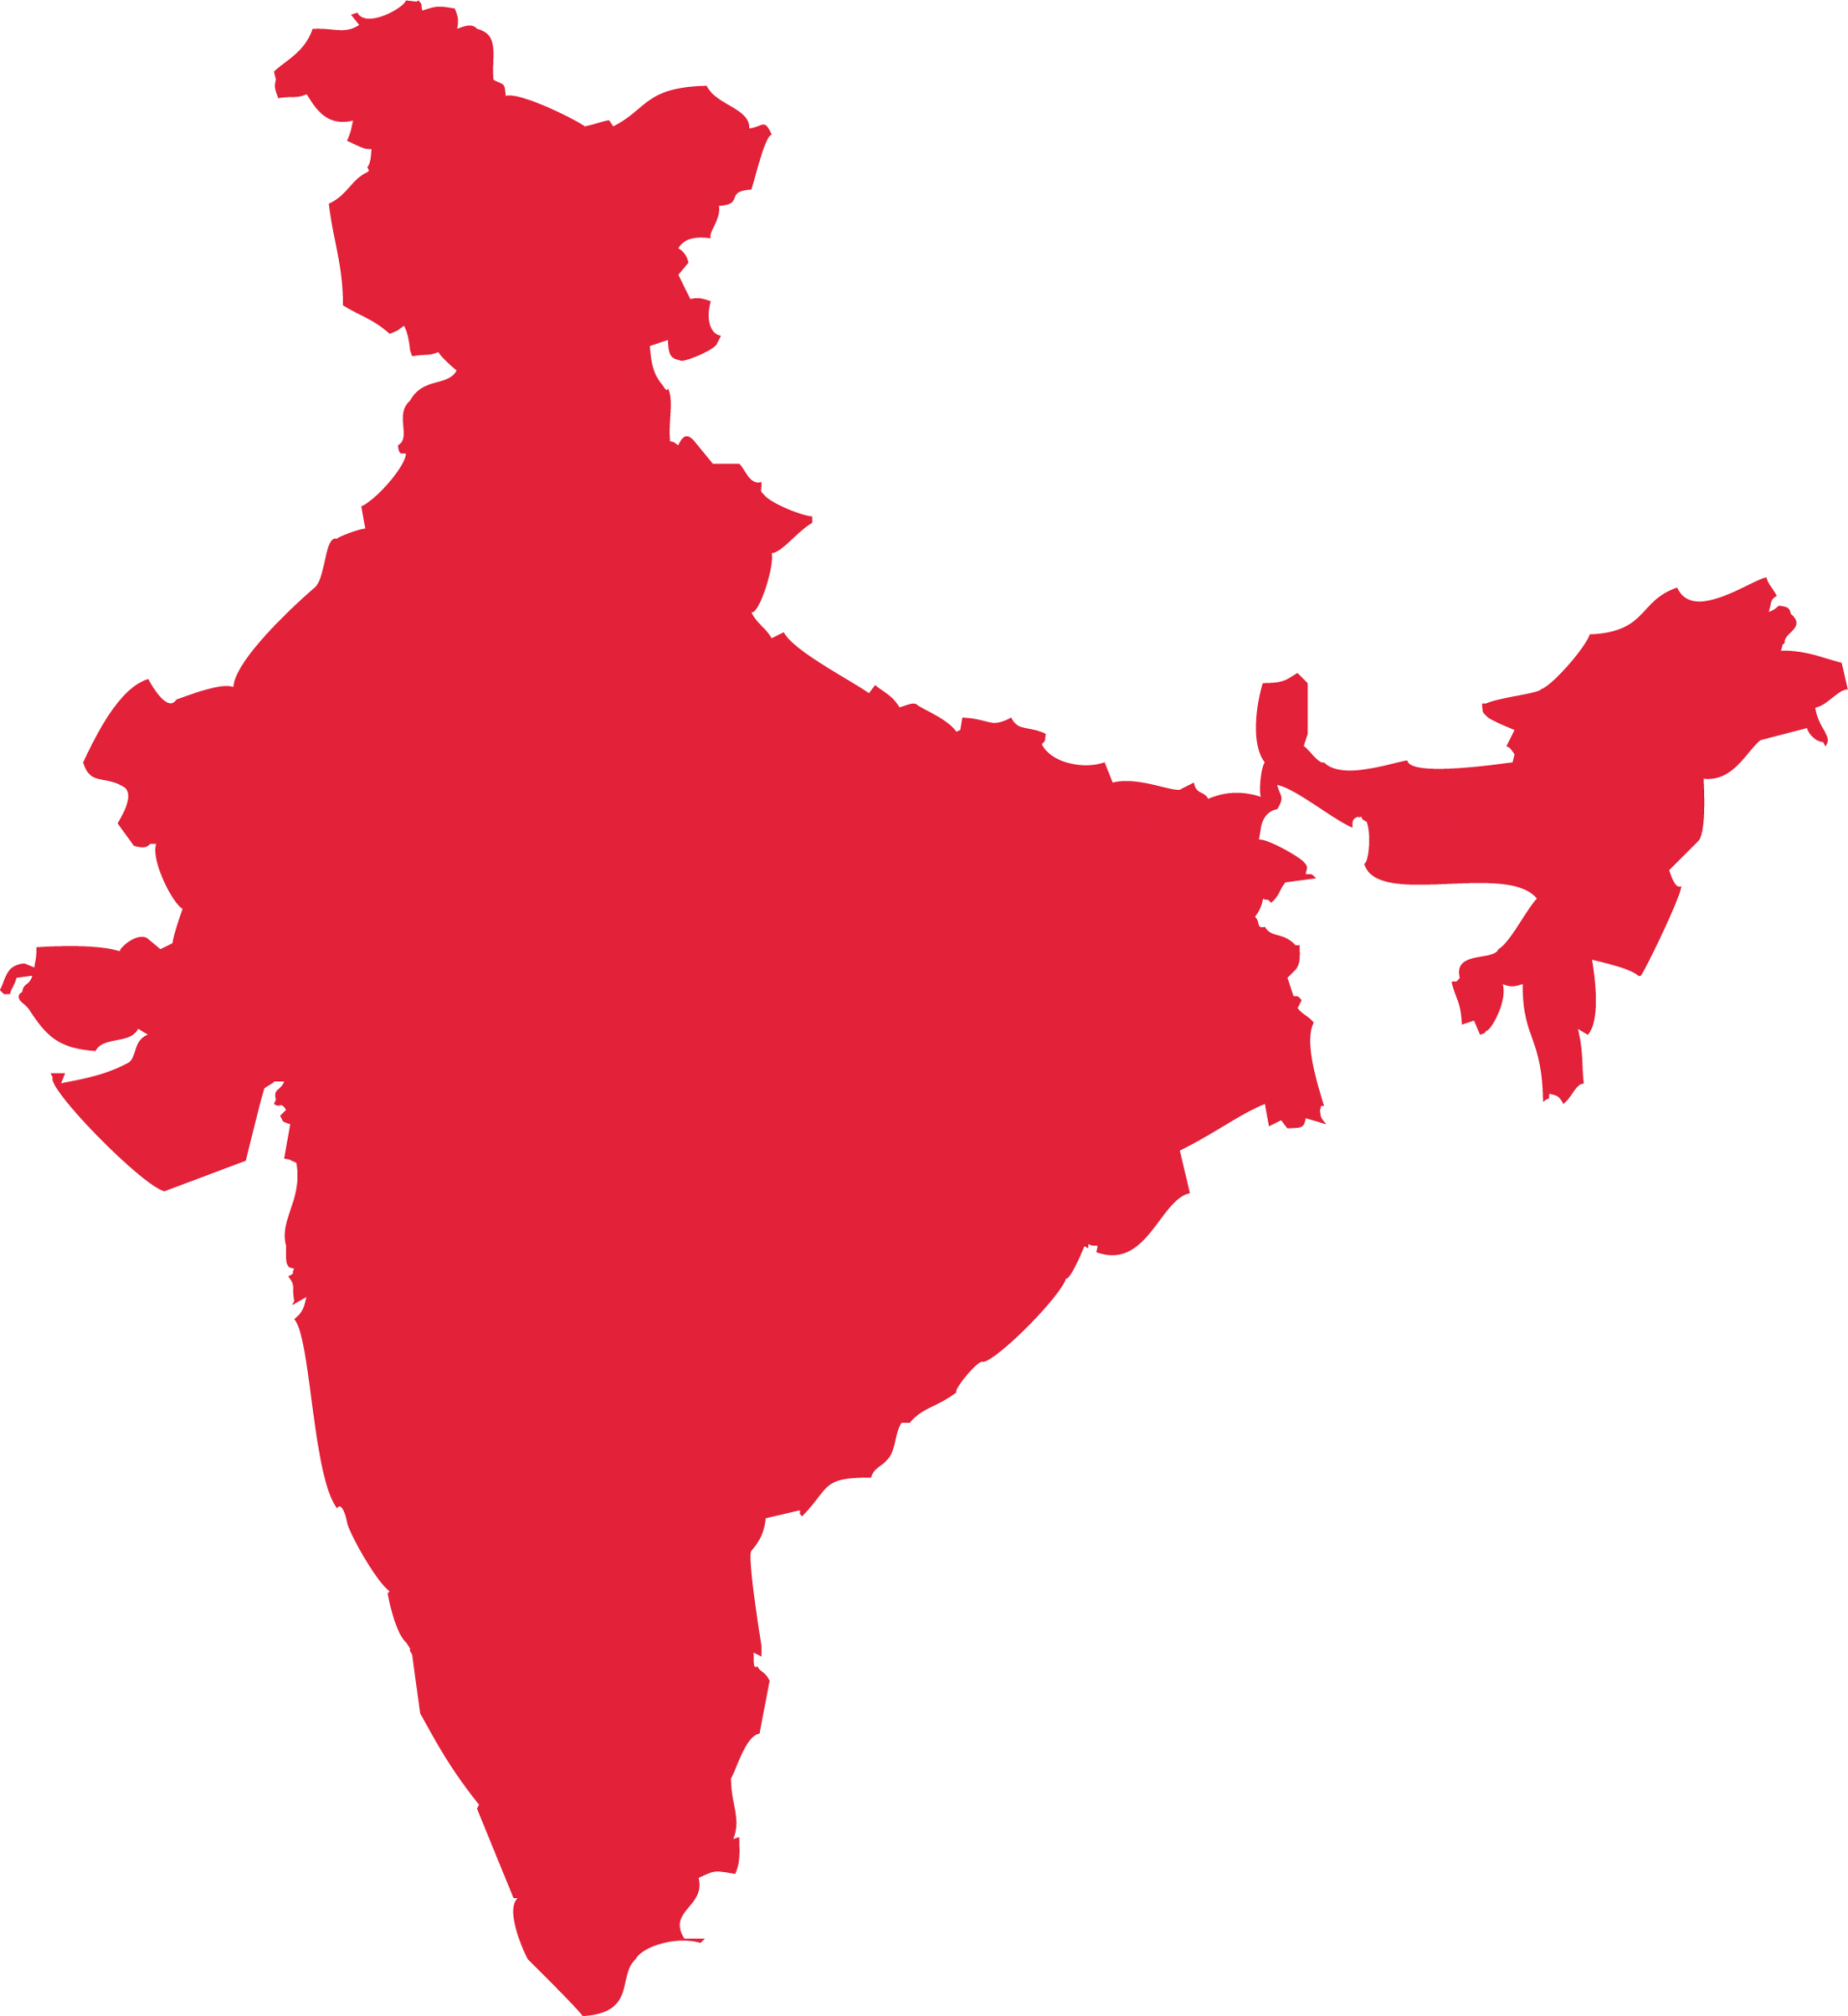 map outline of India